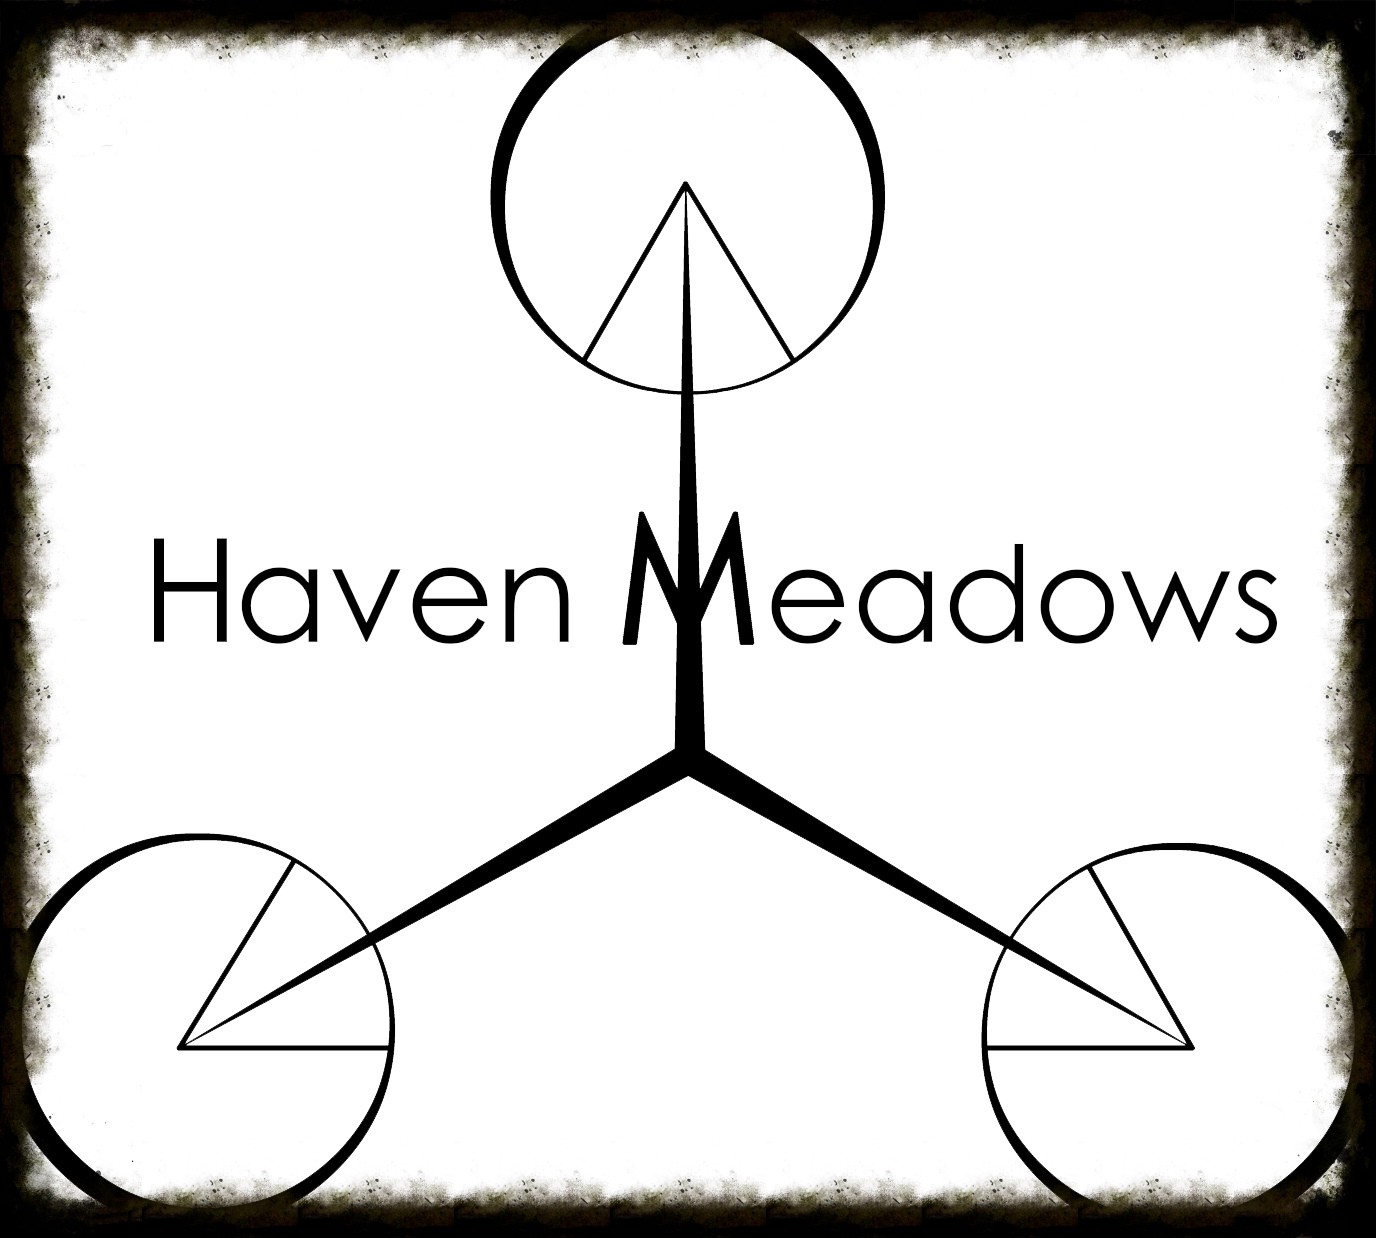 Haven Meadows